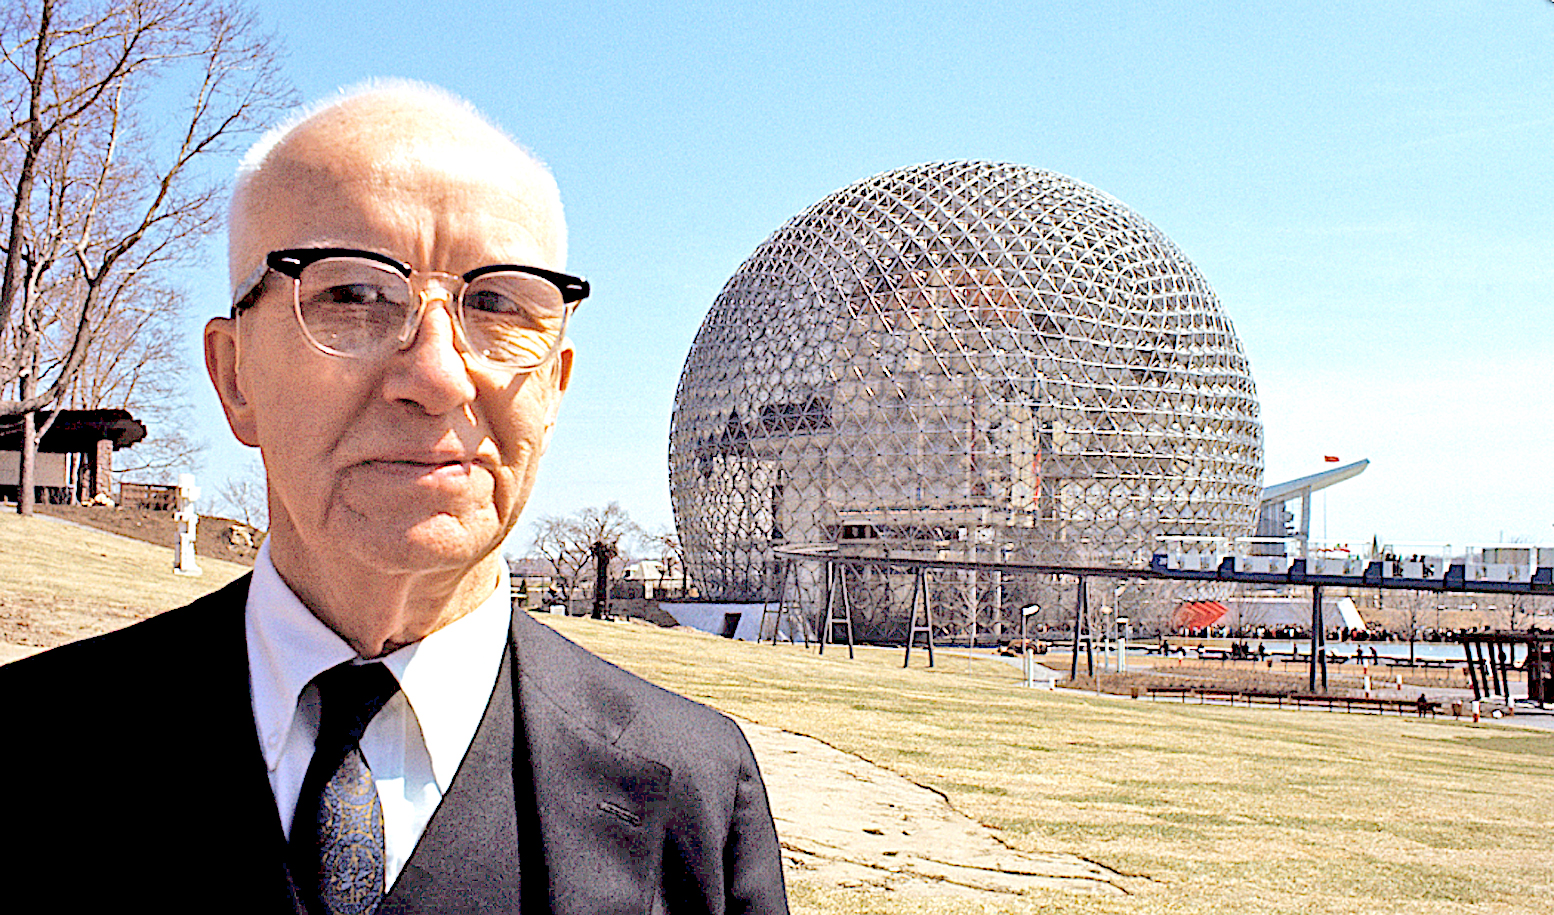 Buckminster Fuller Has A Few Words For You – 1972 – Ford Hall Forum Lecture – Past Daily Weekend Gallimaufry